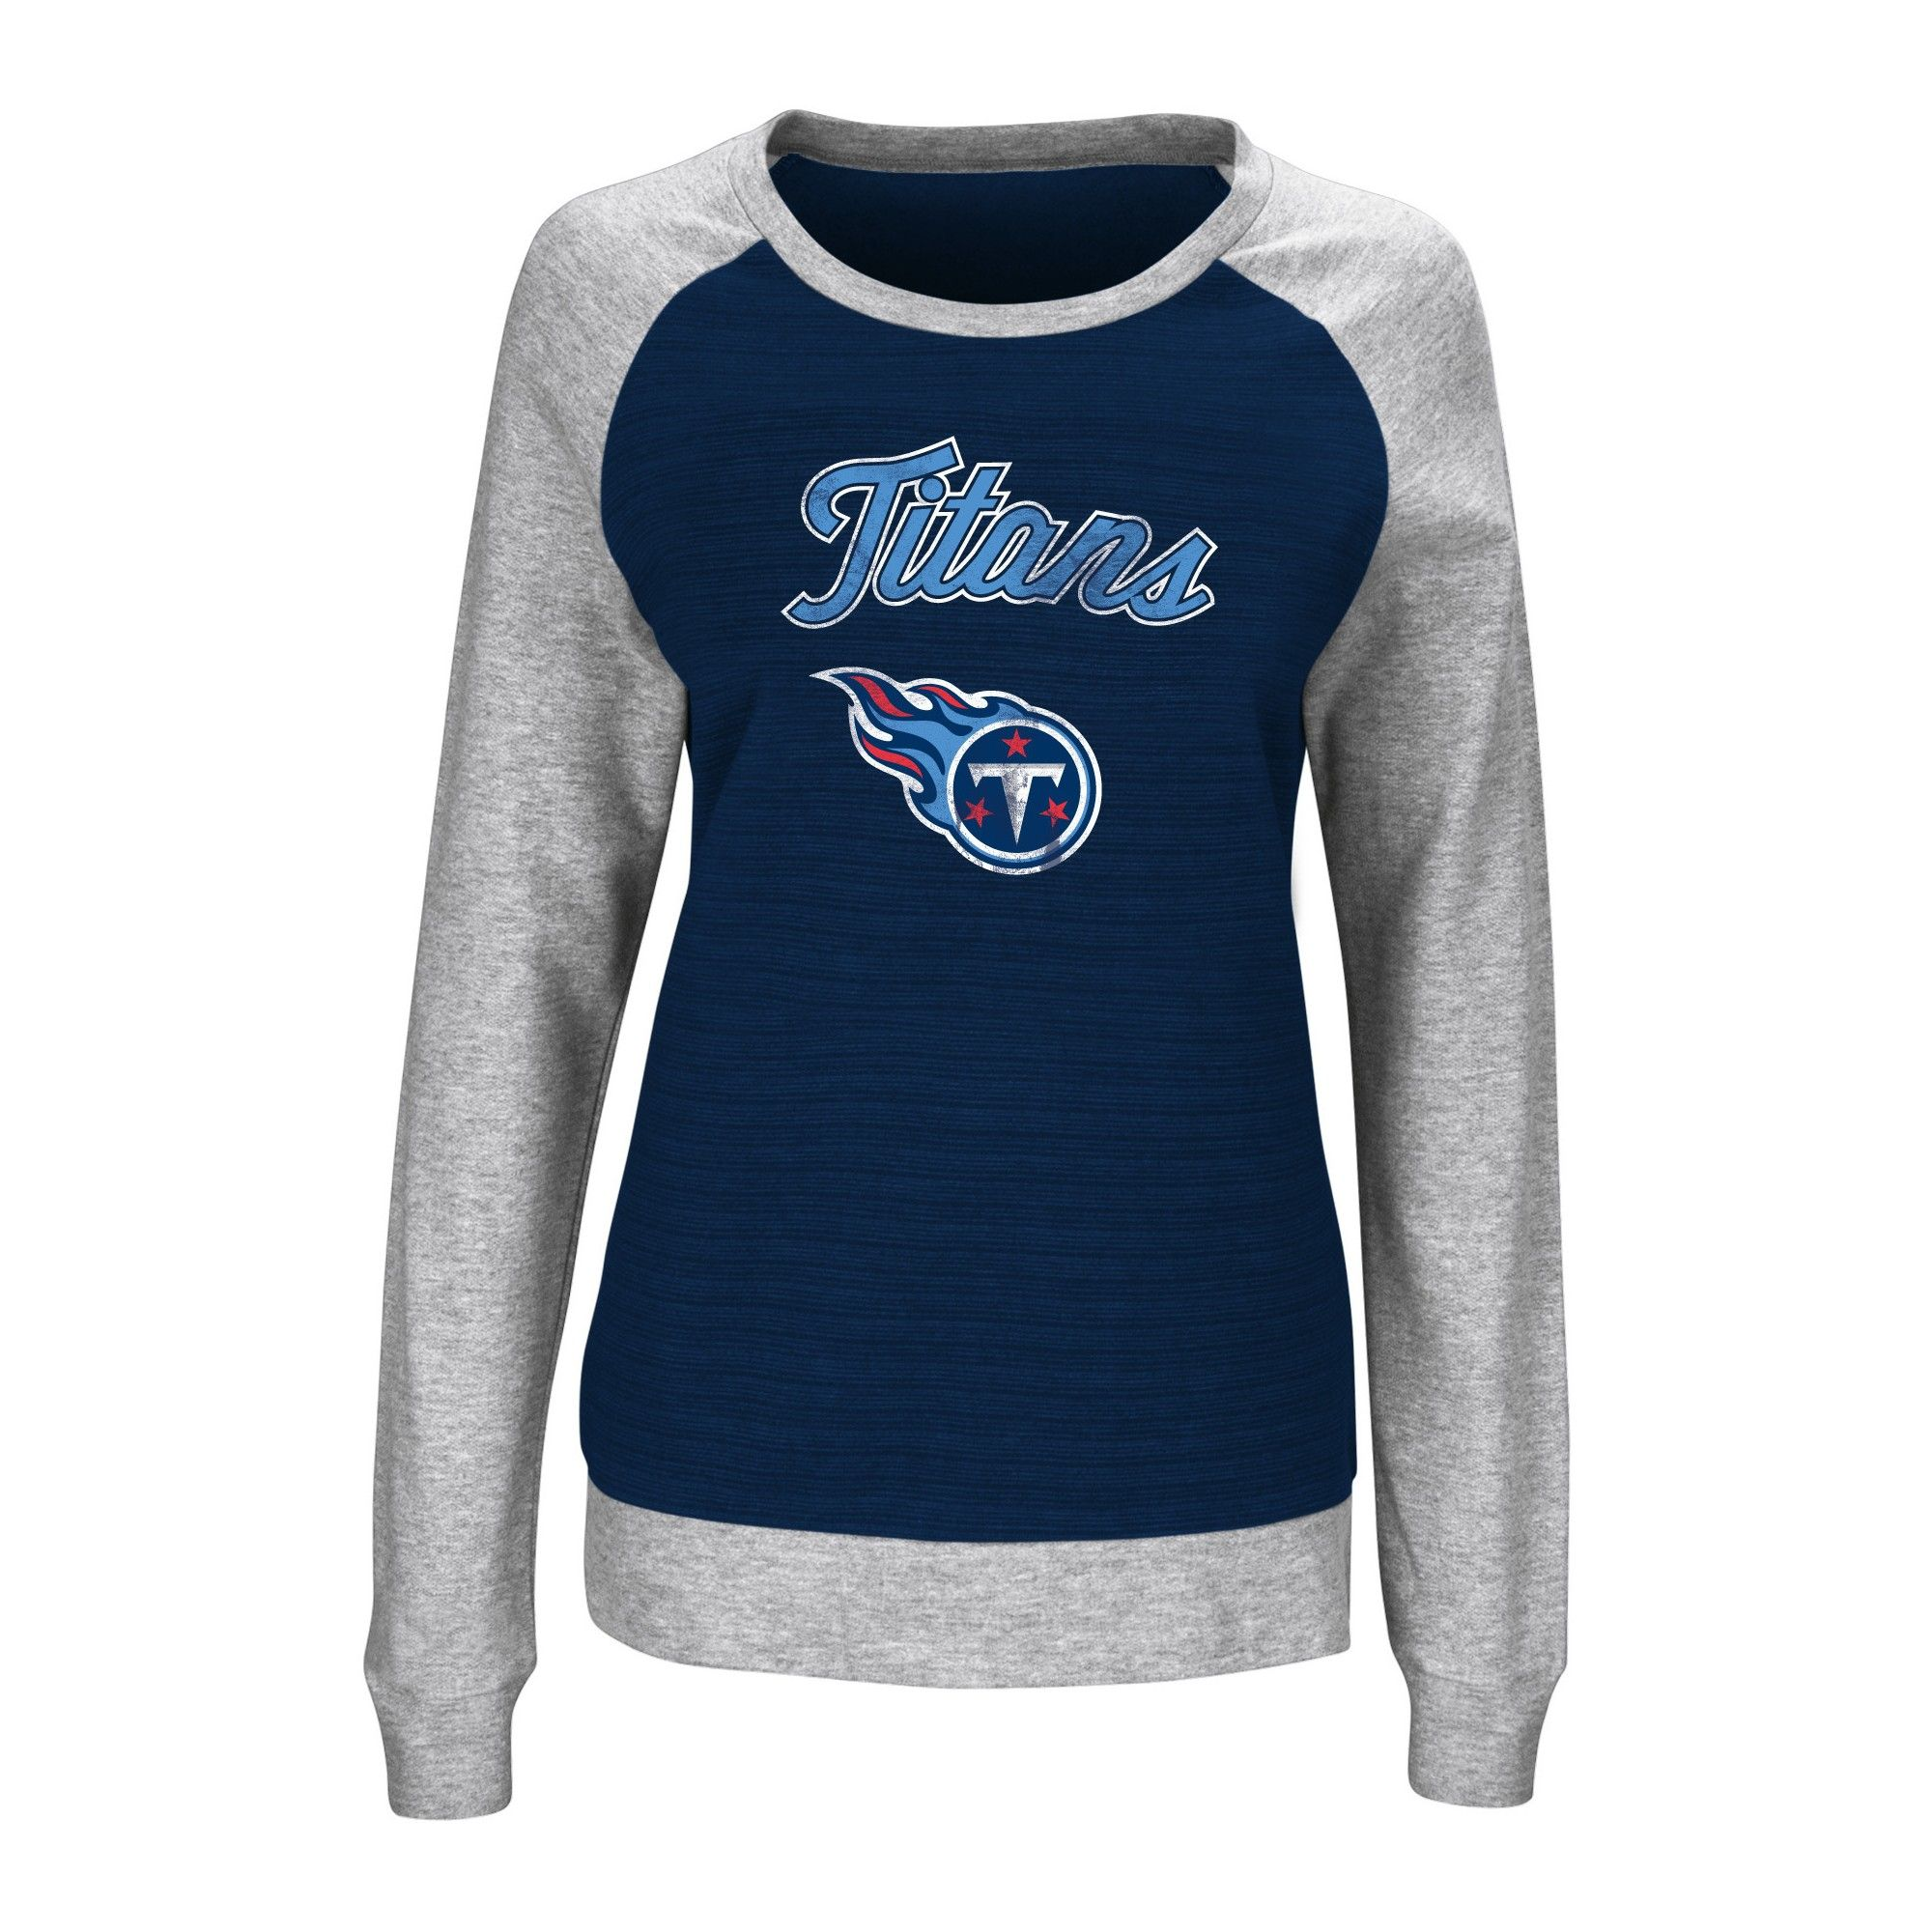 reputable site d2853 6a791 Tennessee Titans Sweatshirt XL, Multicolored Gray | Products ...